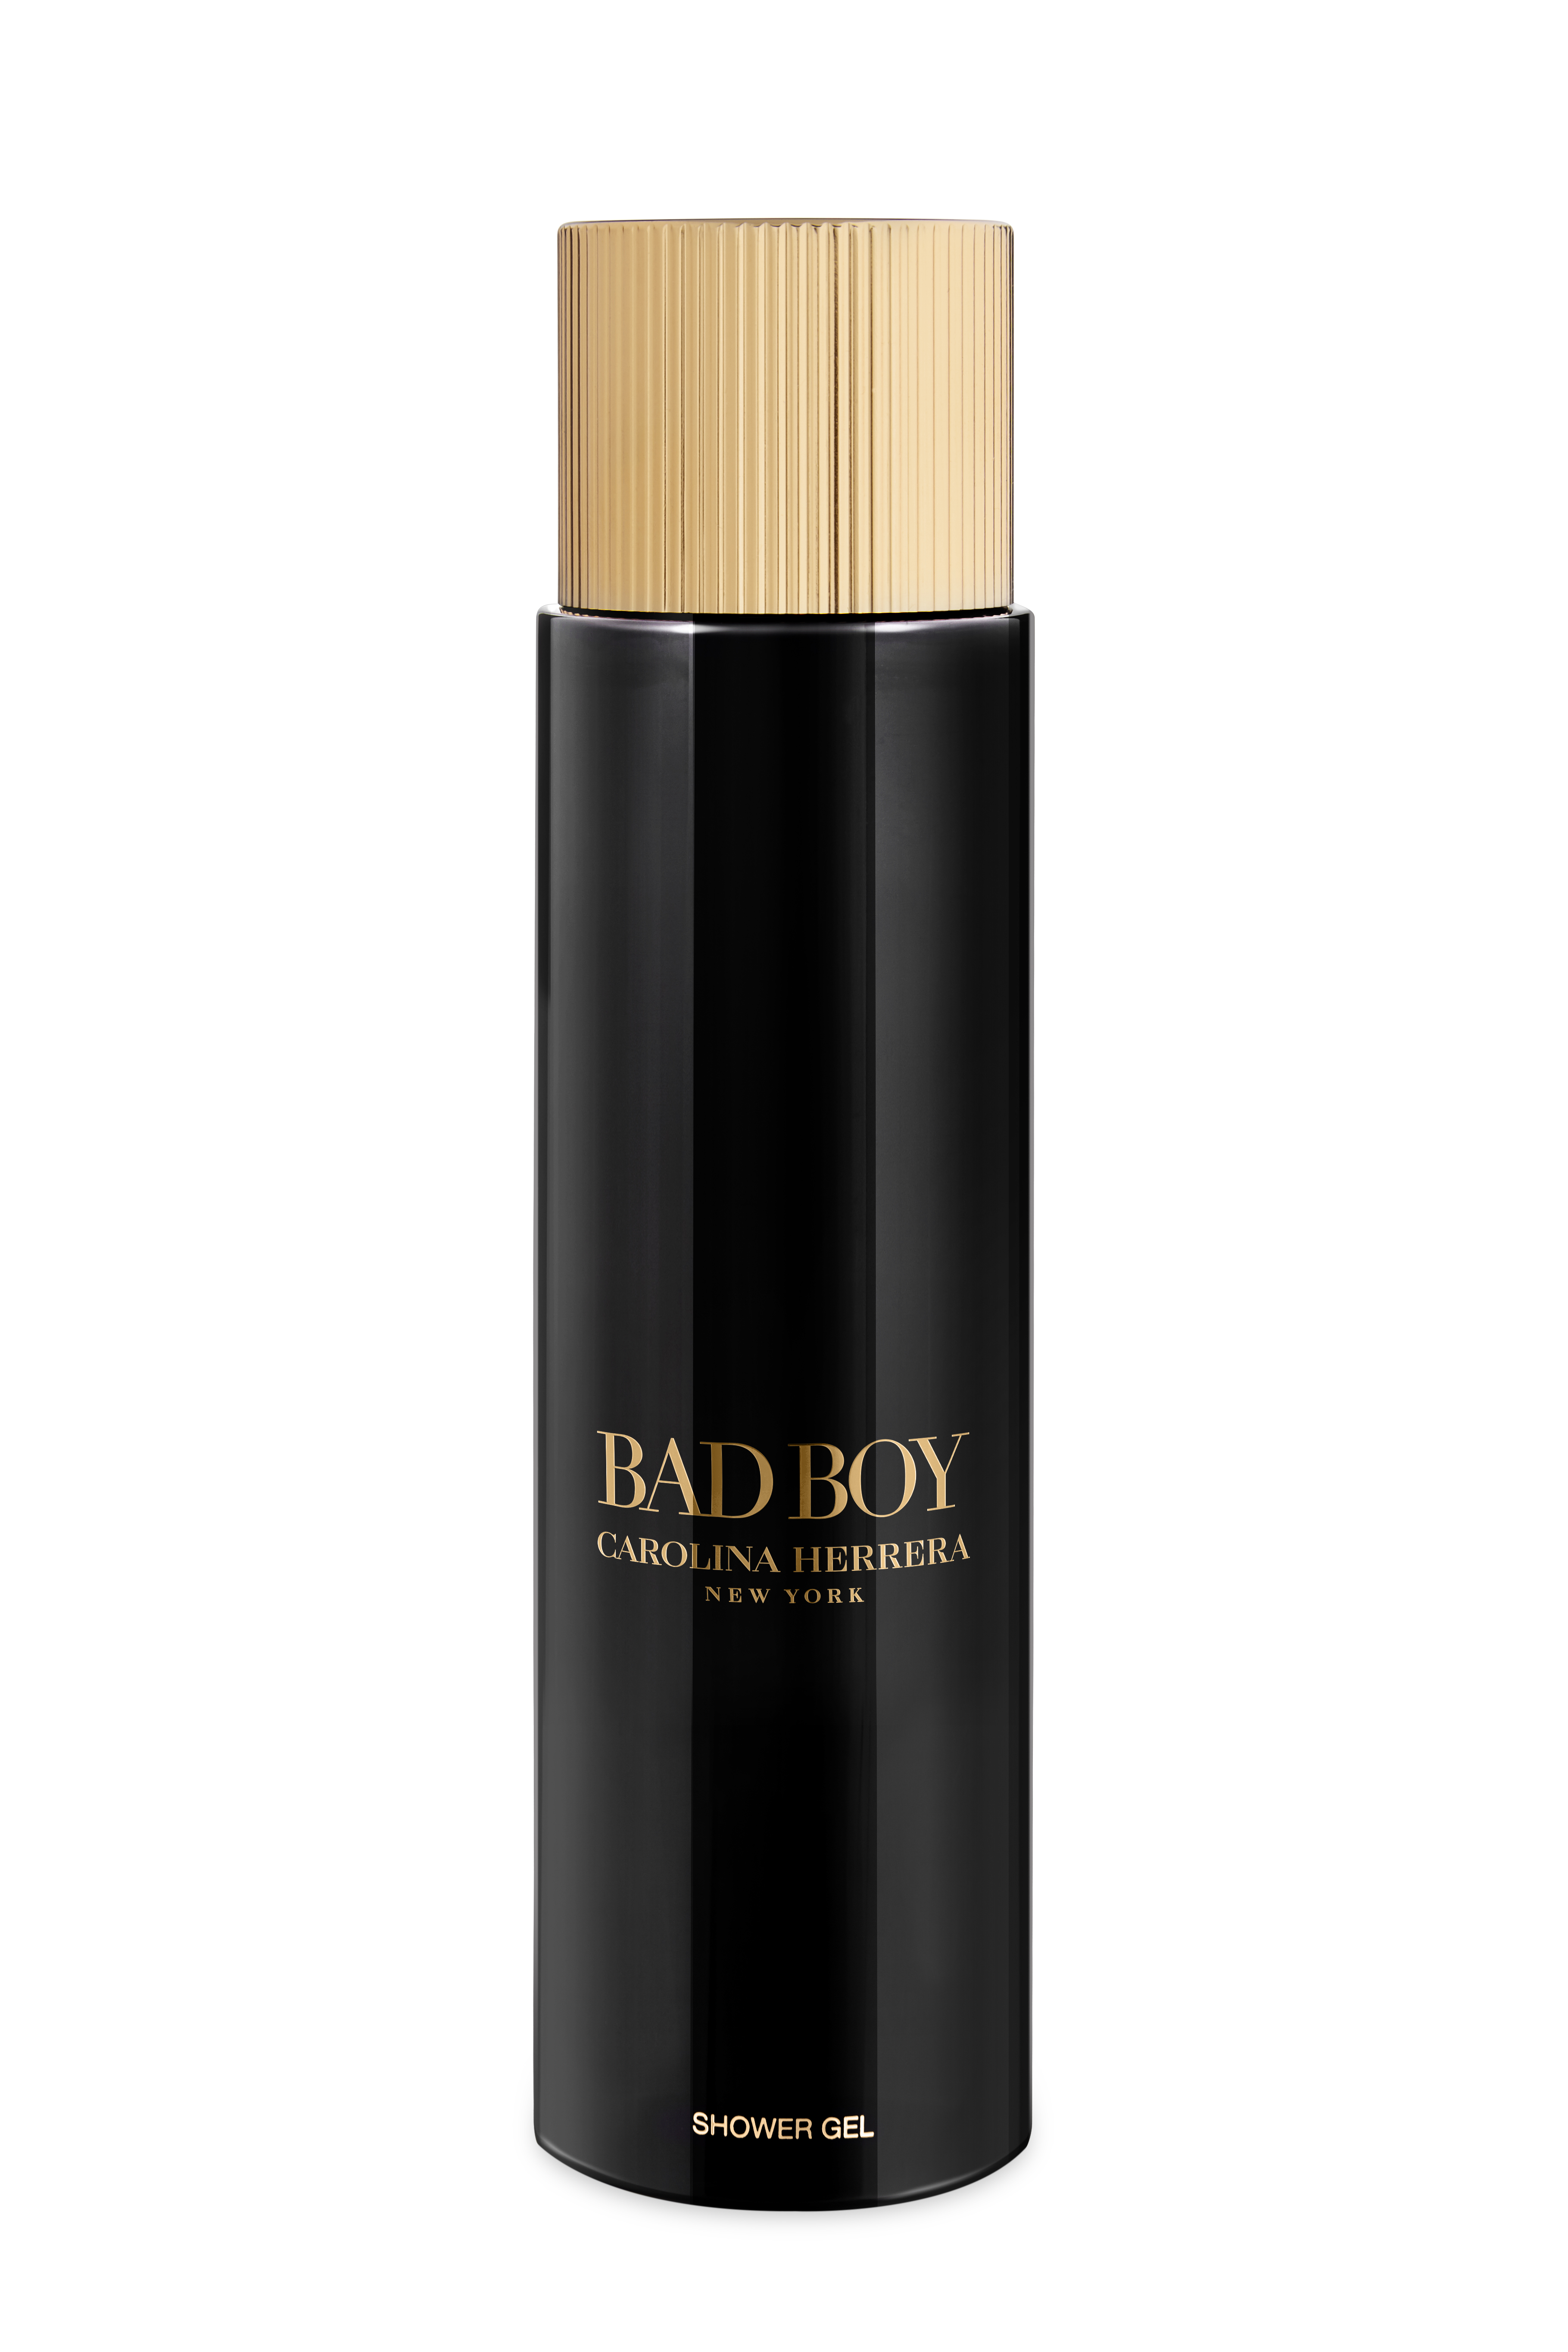 Carolina Herrera Bad Boy Shower Gel 6.8oz (200ml)